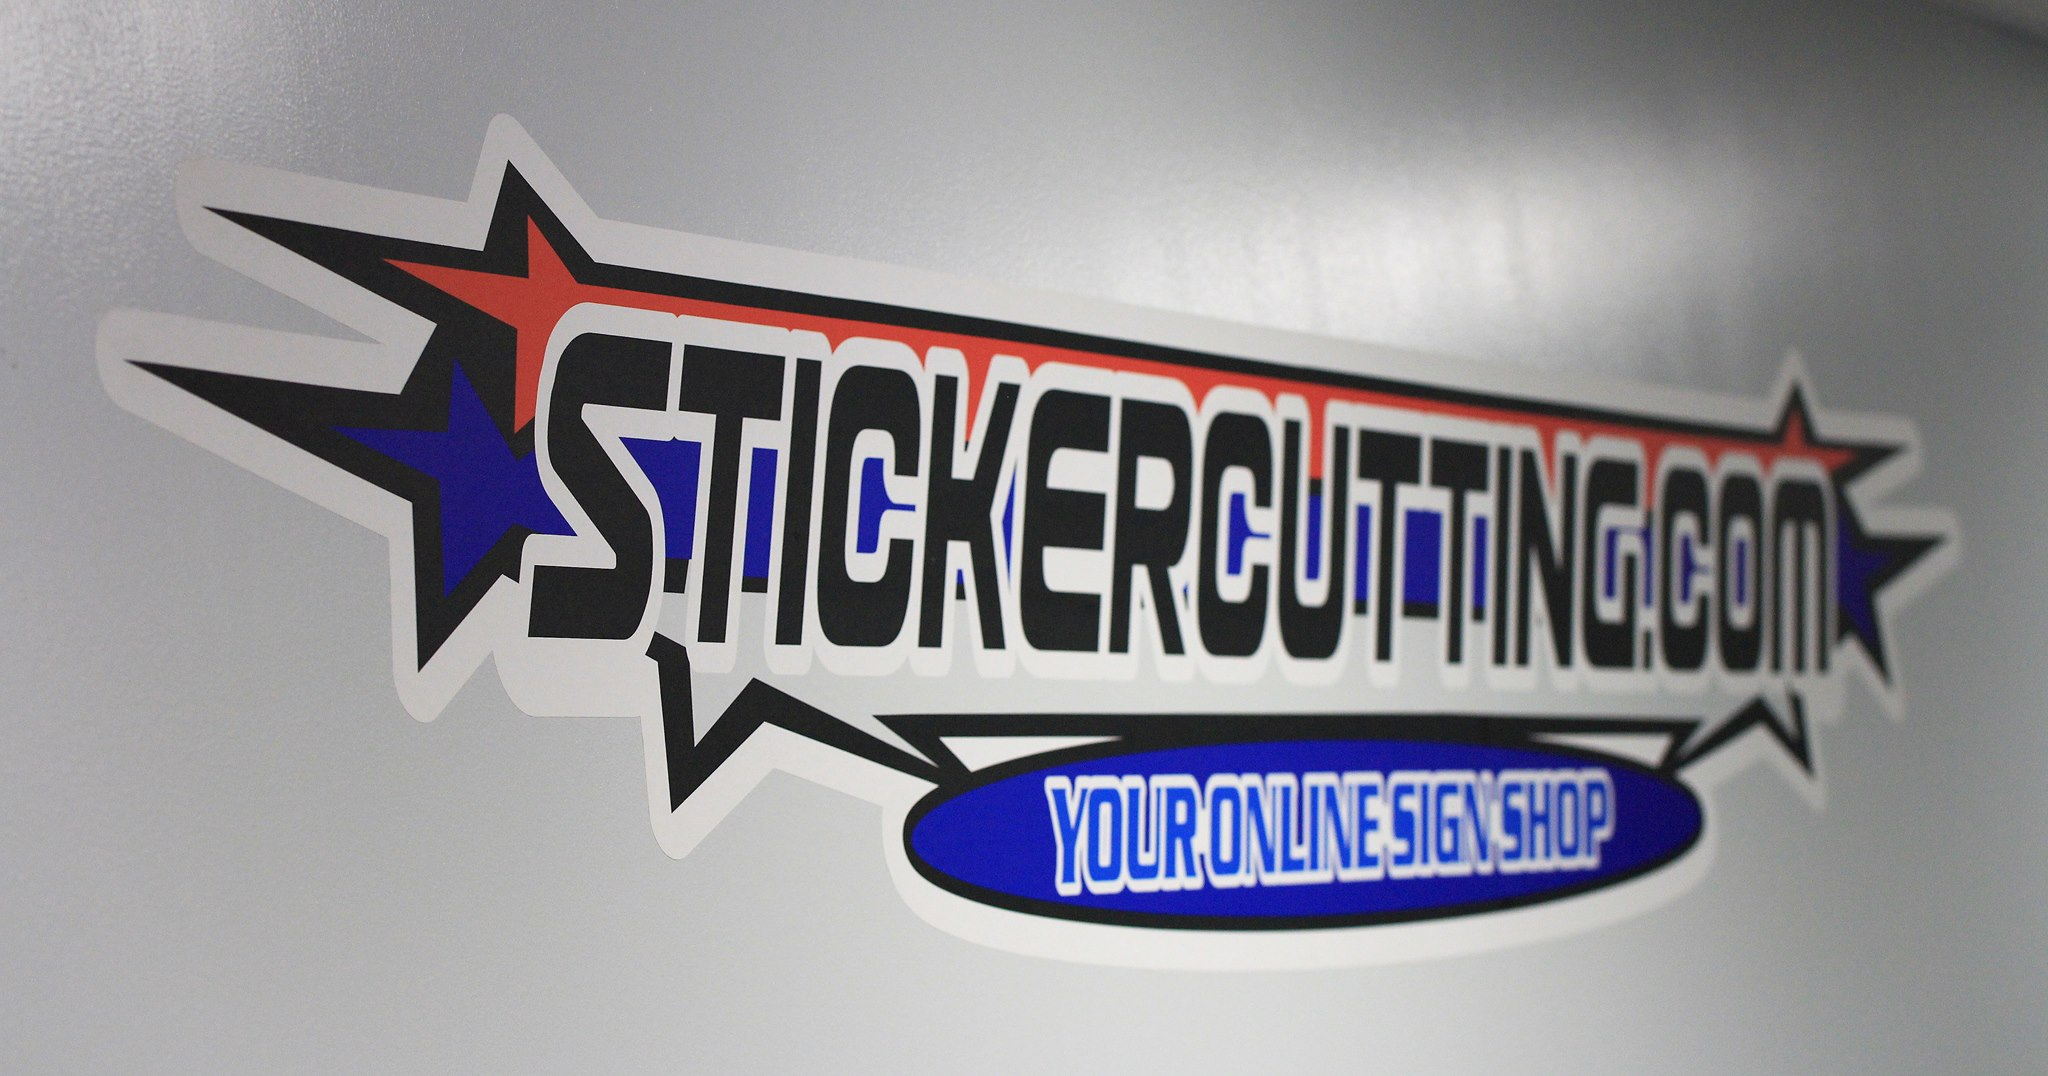 Stickercutting.com Your Online Sign Shop